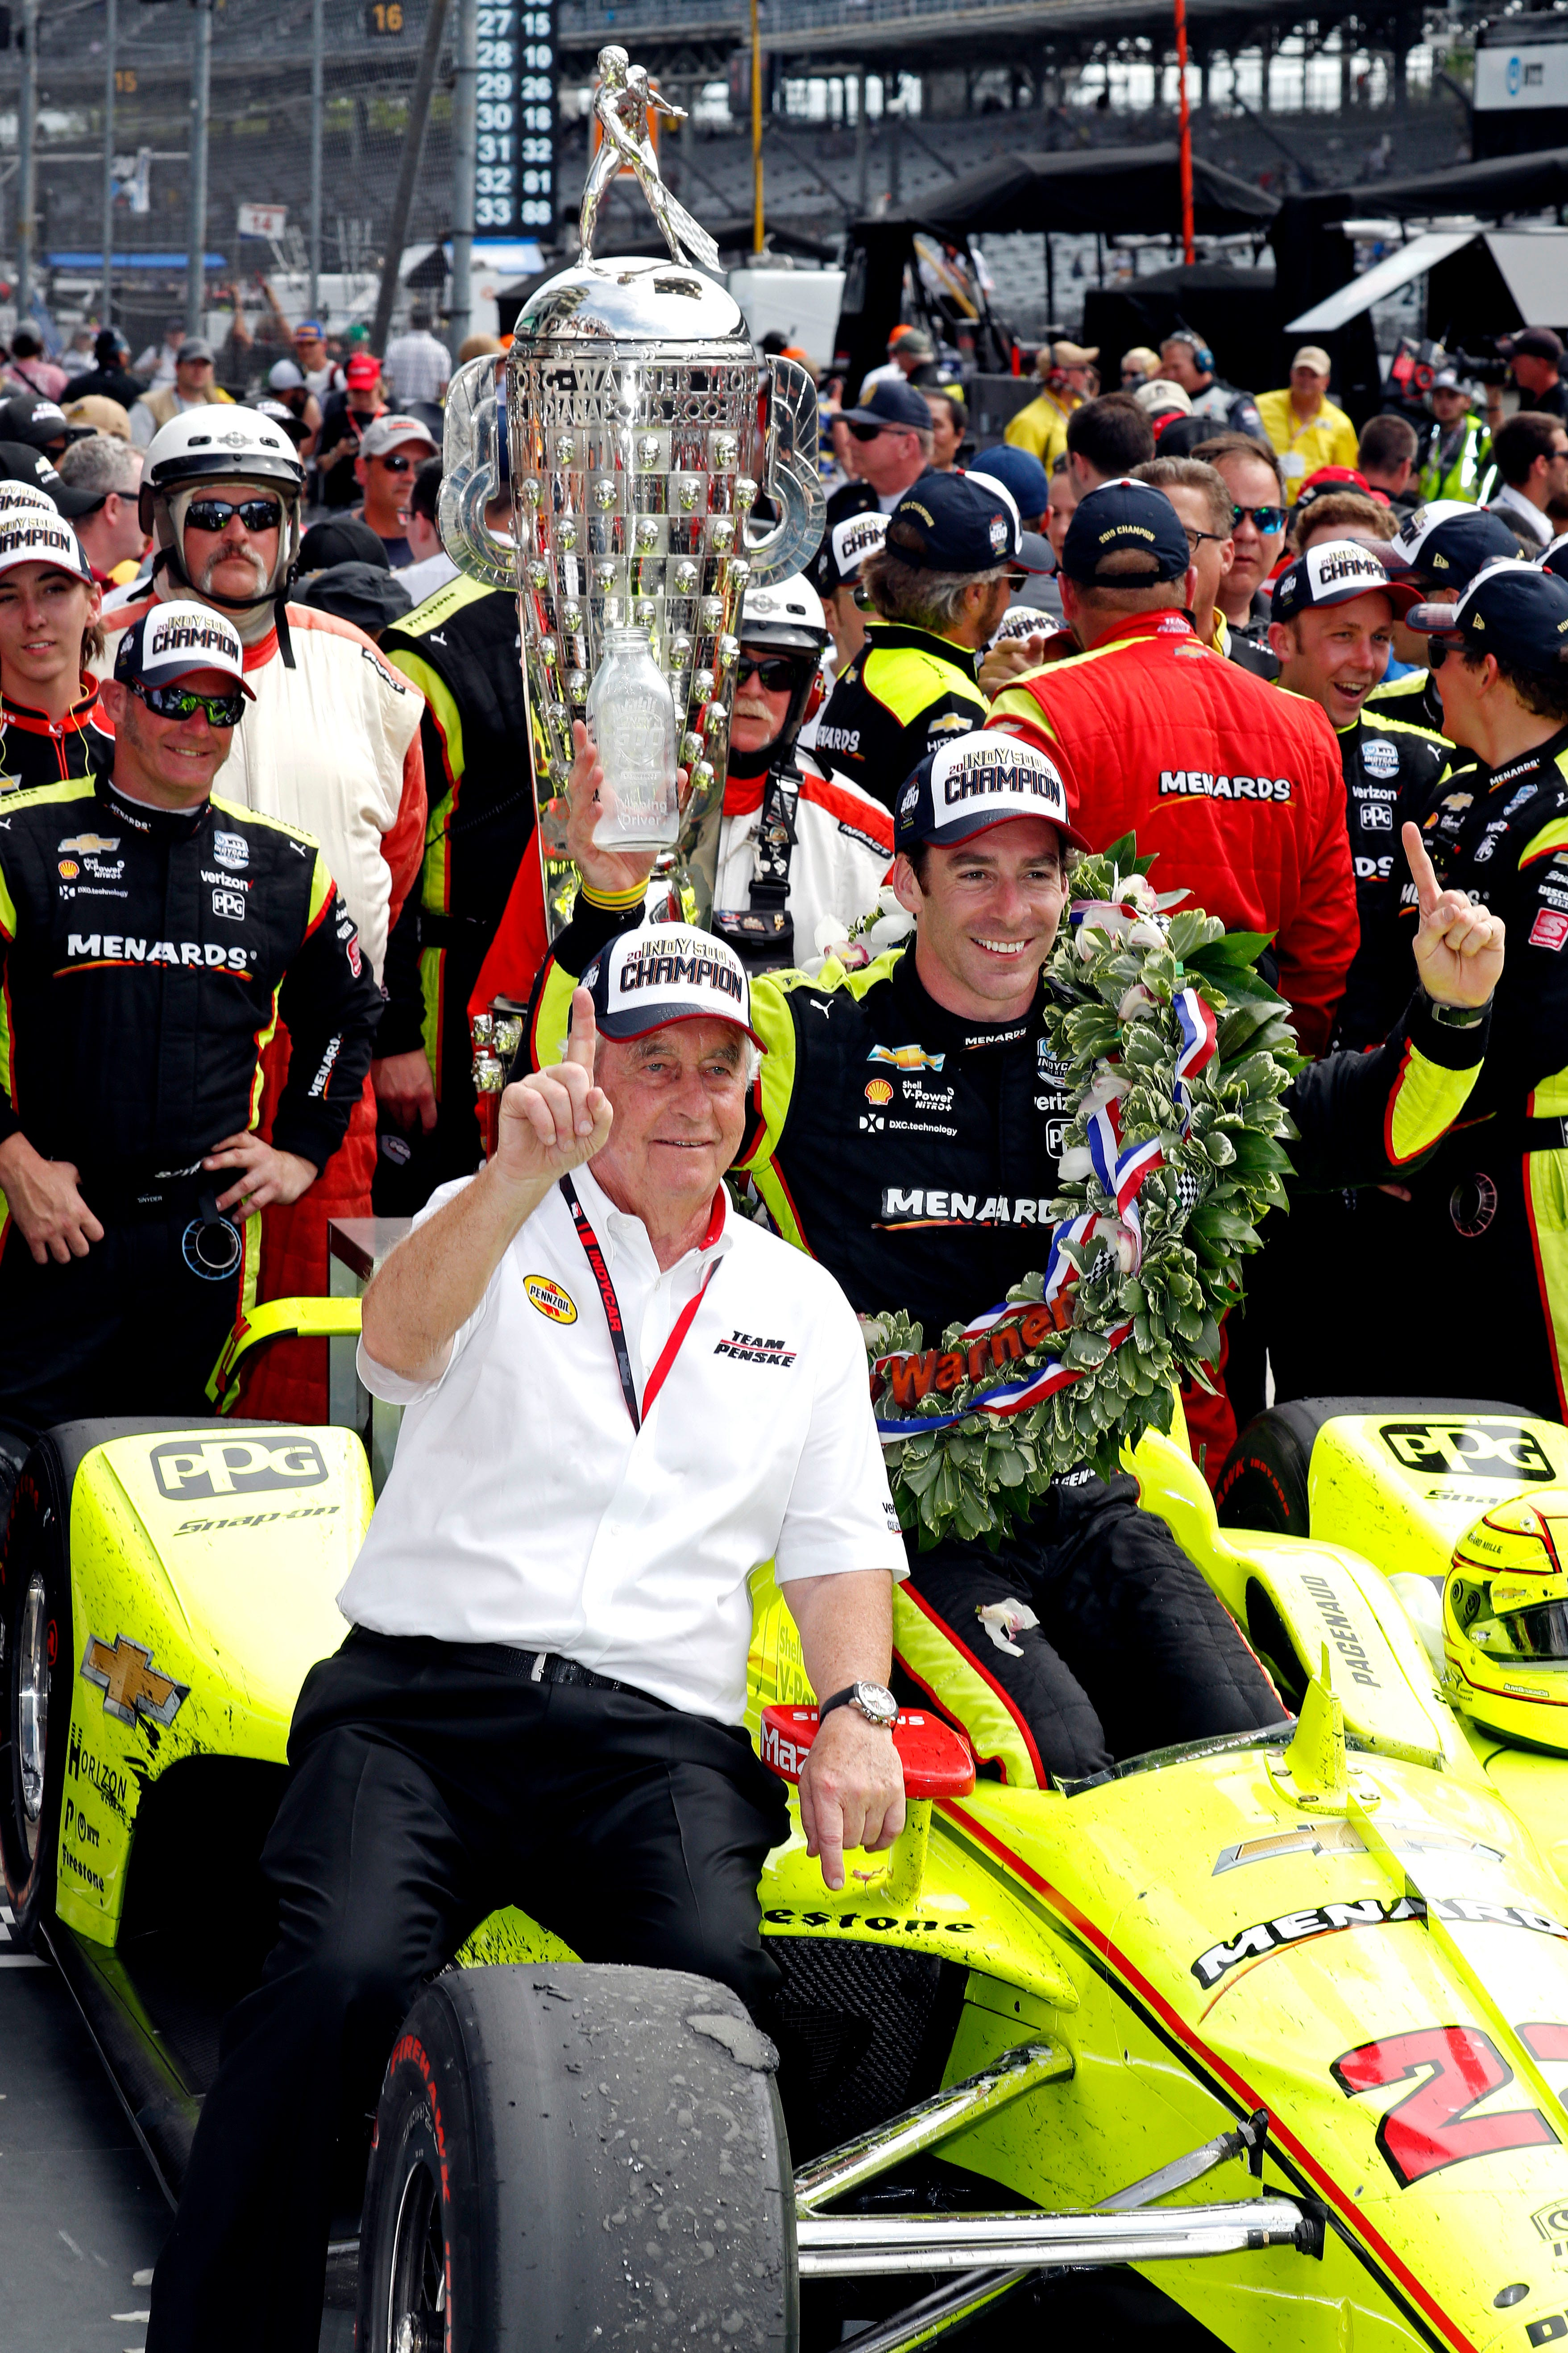 President Trump issues White House invitation to Indy 500 winner Simon Pagenaud, Roger Penske